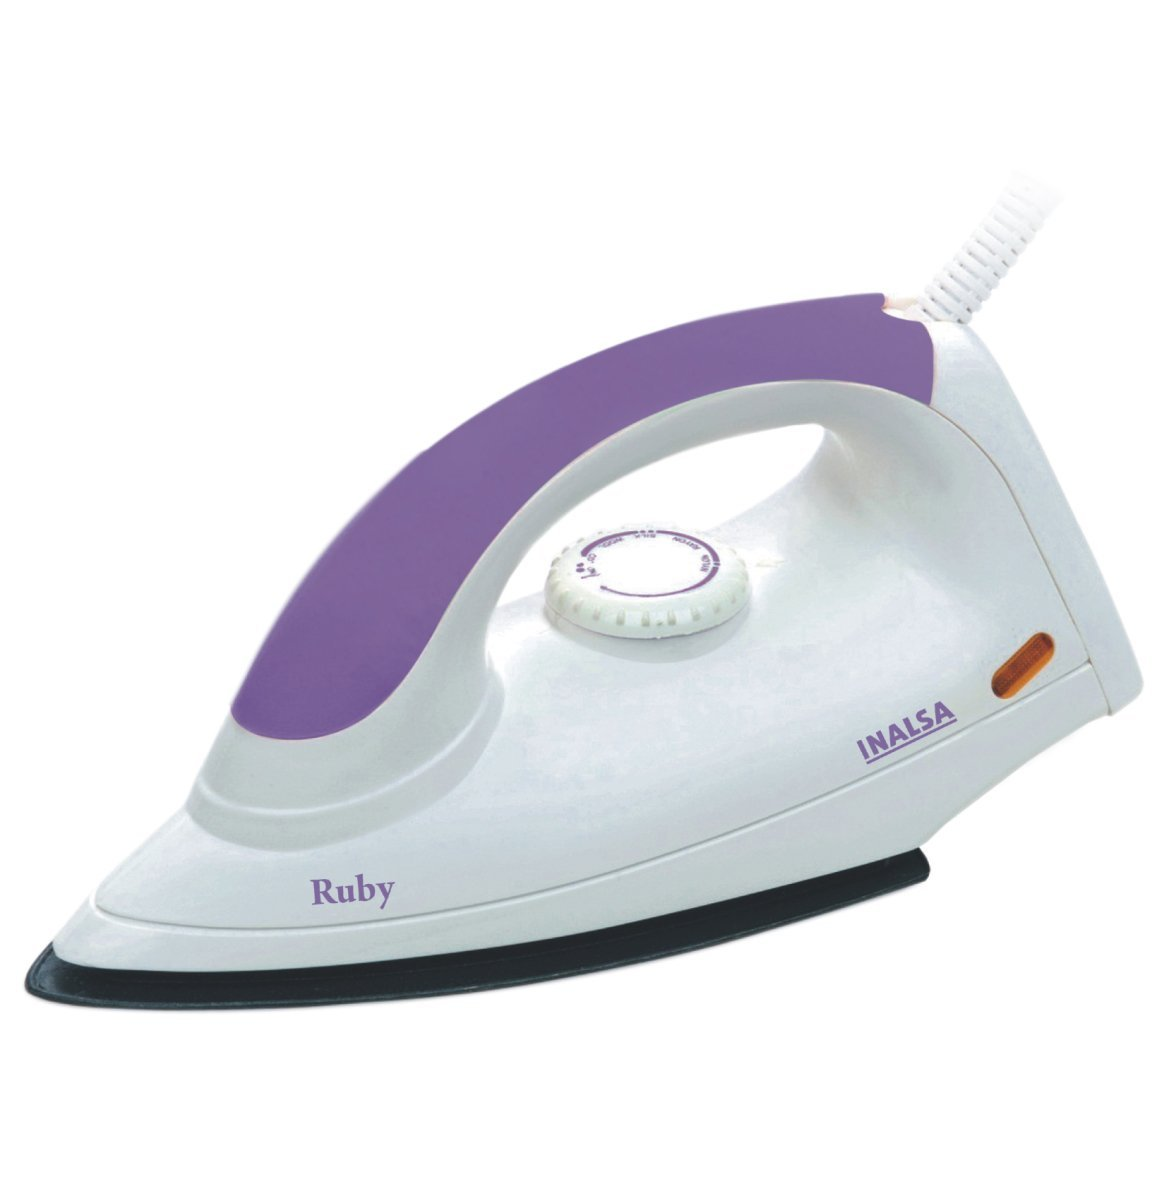 Inalsa Ruby 1000-Watt dry iron with Non-Stick Coated Soleplate(Warranty: 2 Years),White and Purple